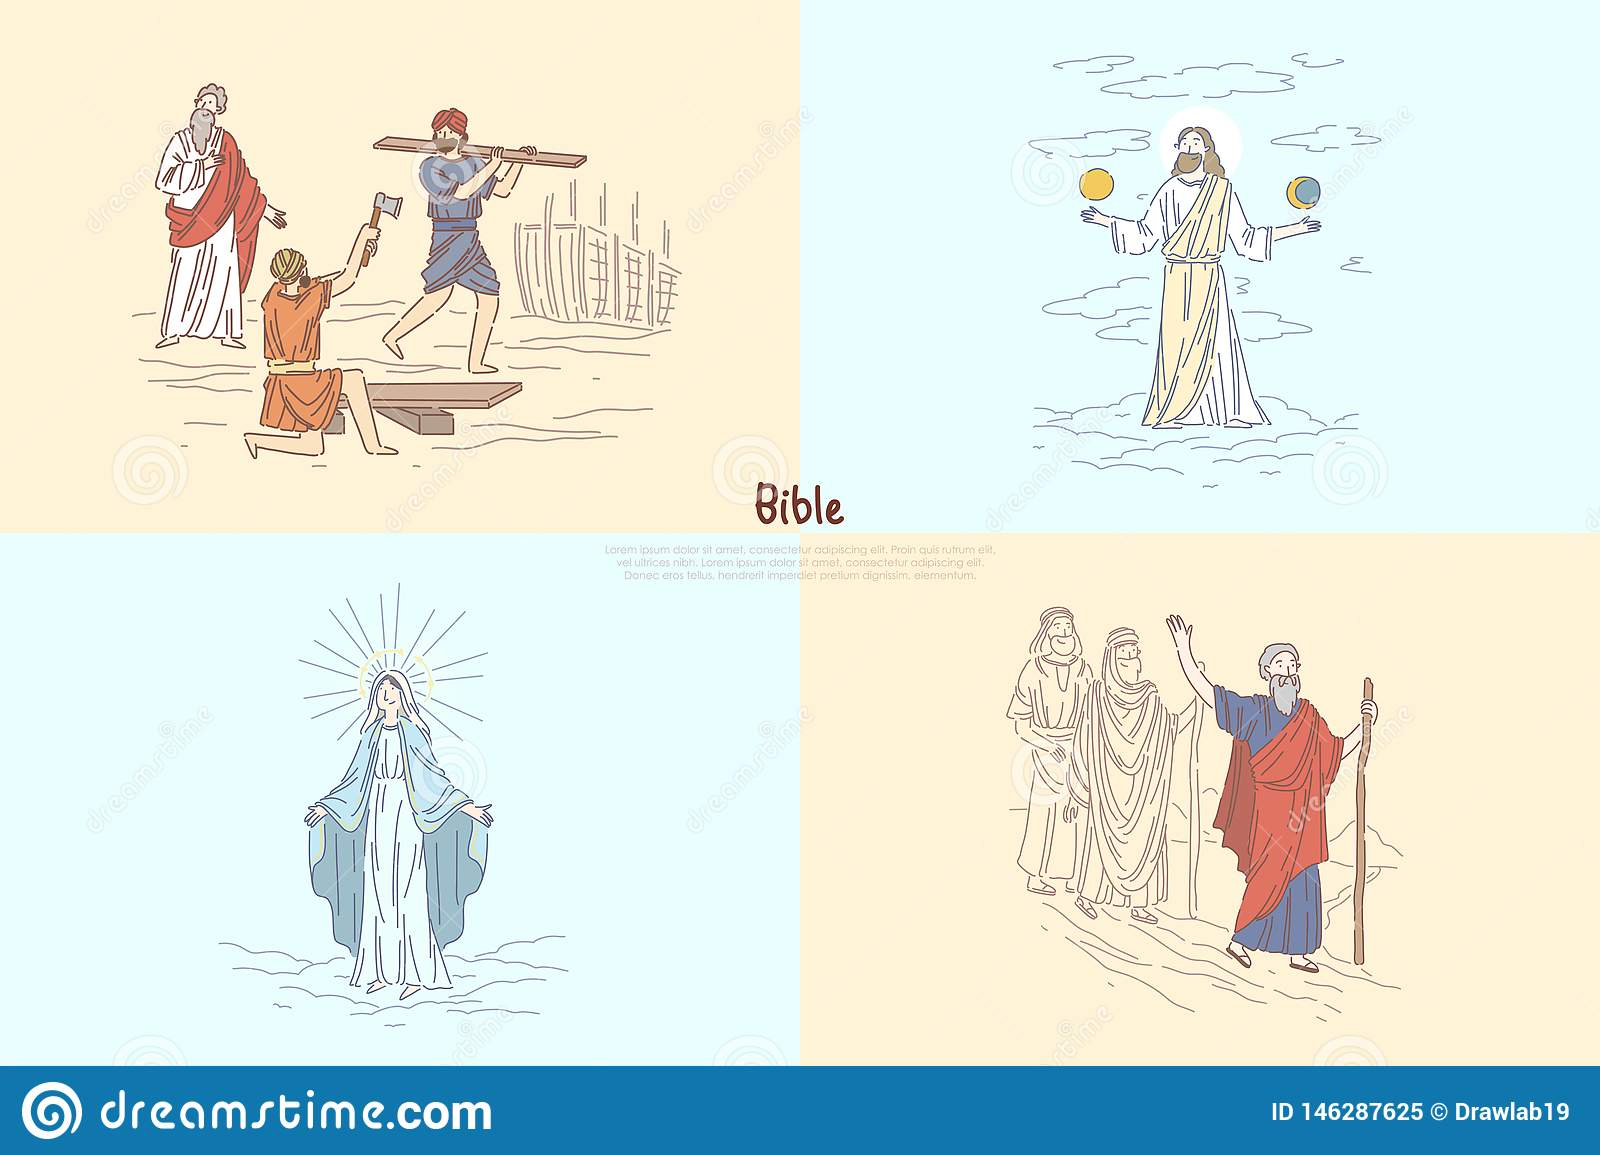 hight resolution of bible story plots myth and legends biblical characters noah ark god creating